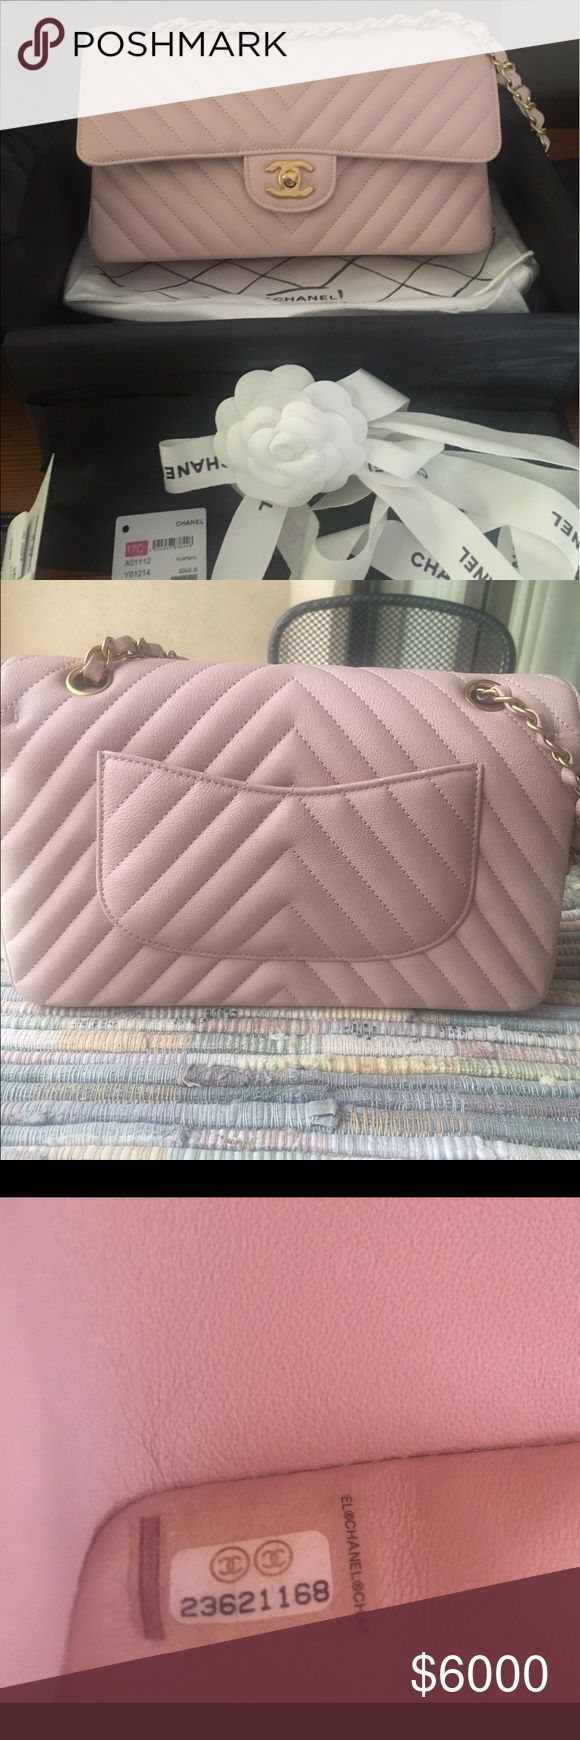 2017 NWT Chanel Pink Medium Calfskin Chevron flap 2017 Chanel Medium Chevron Pink Calfskin Flap w/ brushed gold hardware...bought June 3,2017  The bag is brand new only worn once for a couple hours. There is absolutely no wear on the bag whatsoever. I have a bag similar in color and I feel I can't justify keeping both. It is Full Set including original receipt.   🌸MORE PHOTOS UPON REQUEST🌸  Comes with box, bag, dustbag, care kit, tag, card, ribbons, Camilla, and receipt.  Please feel free…